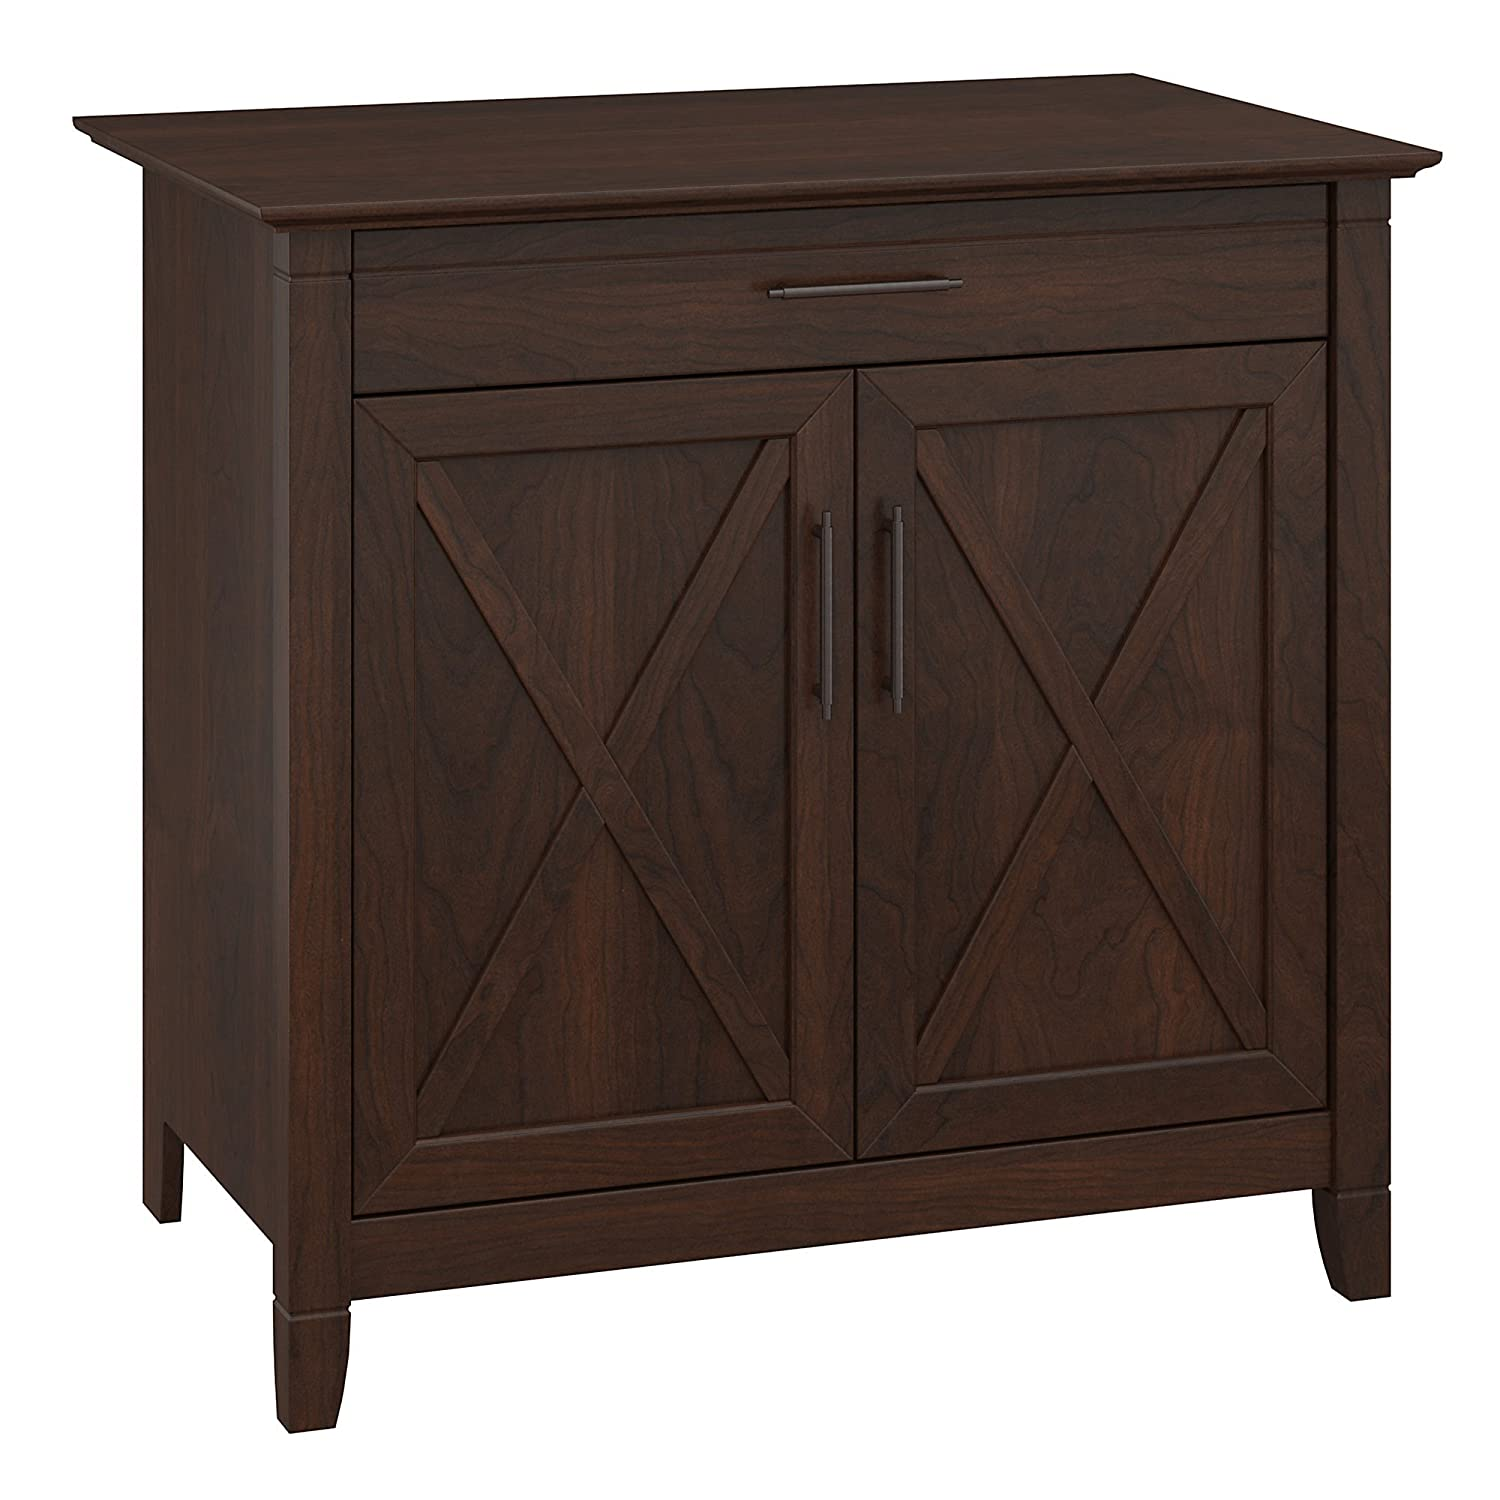 Bush Furniture Key West Laptop Storage Desk Credenza in Bing Cherry Bush Industries KWS132BC-03